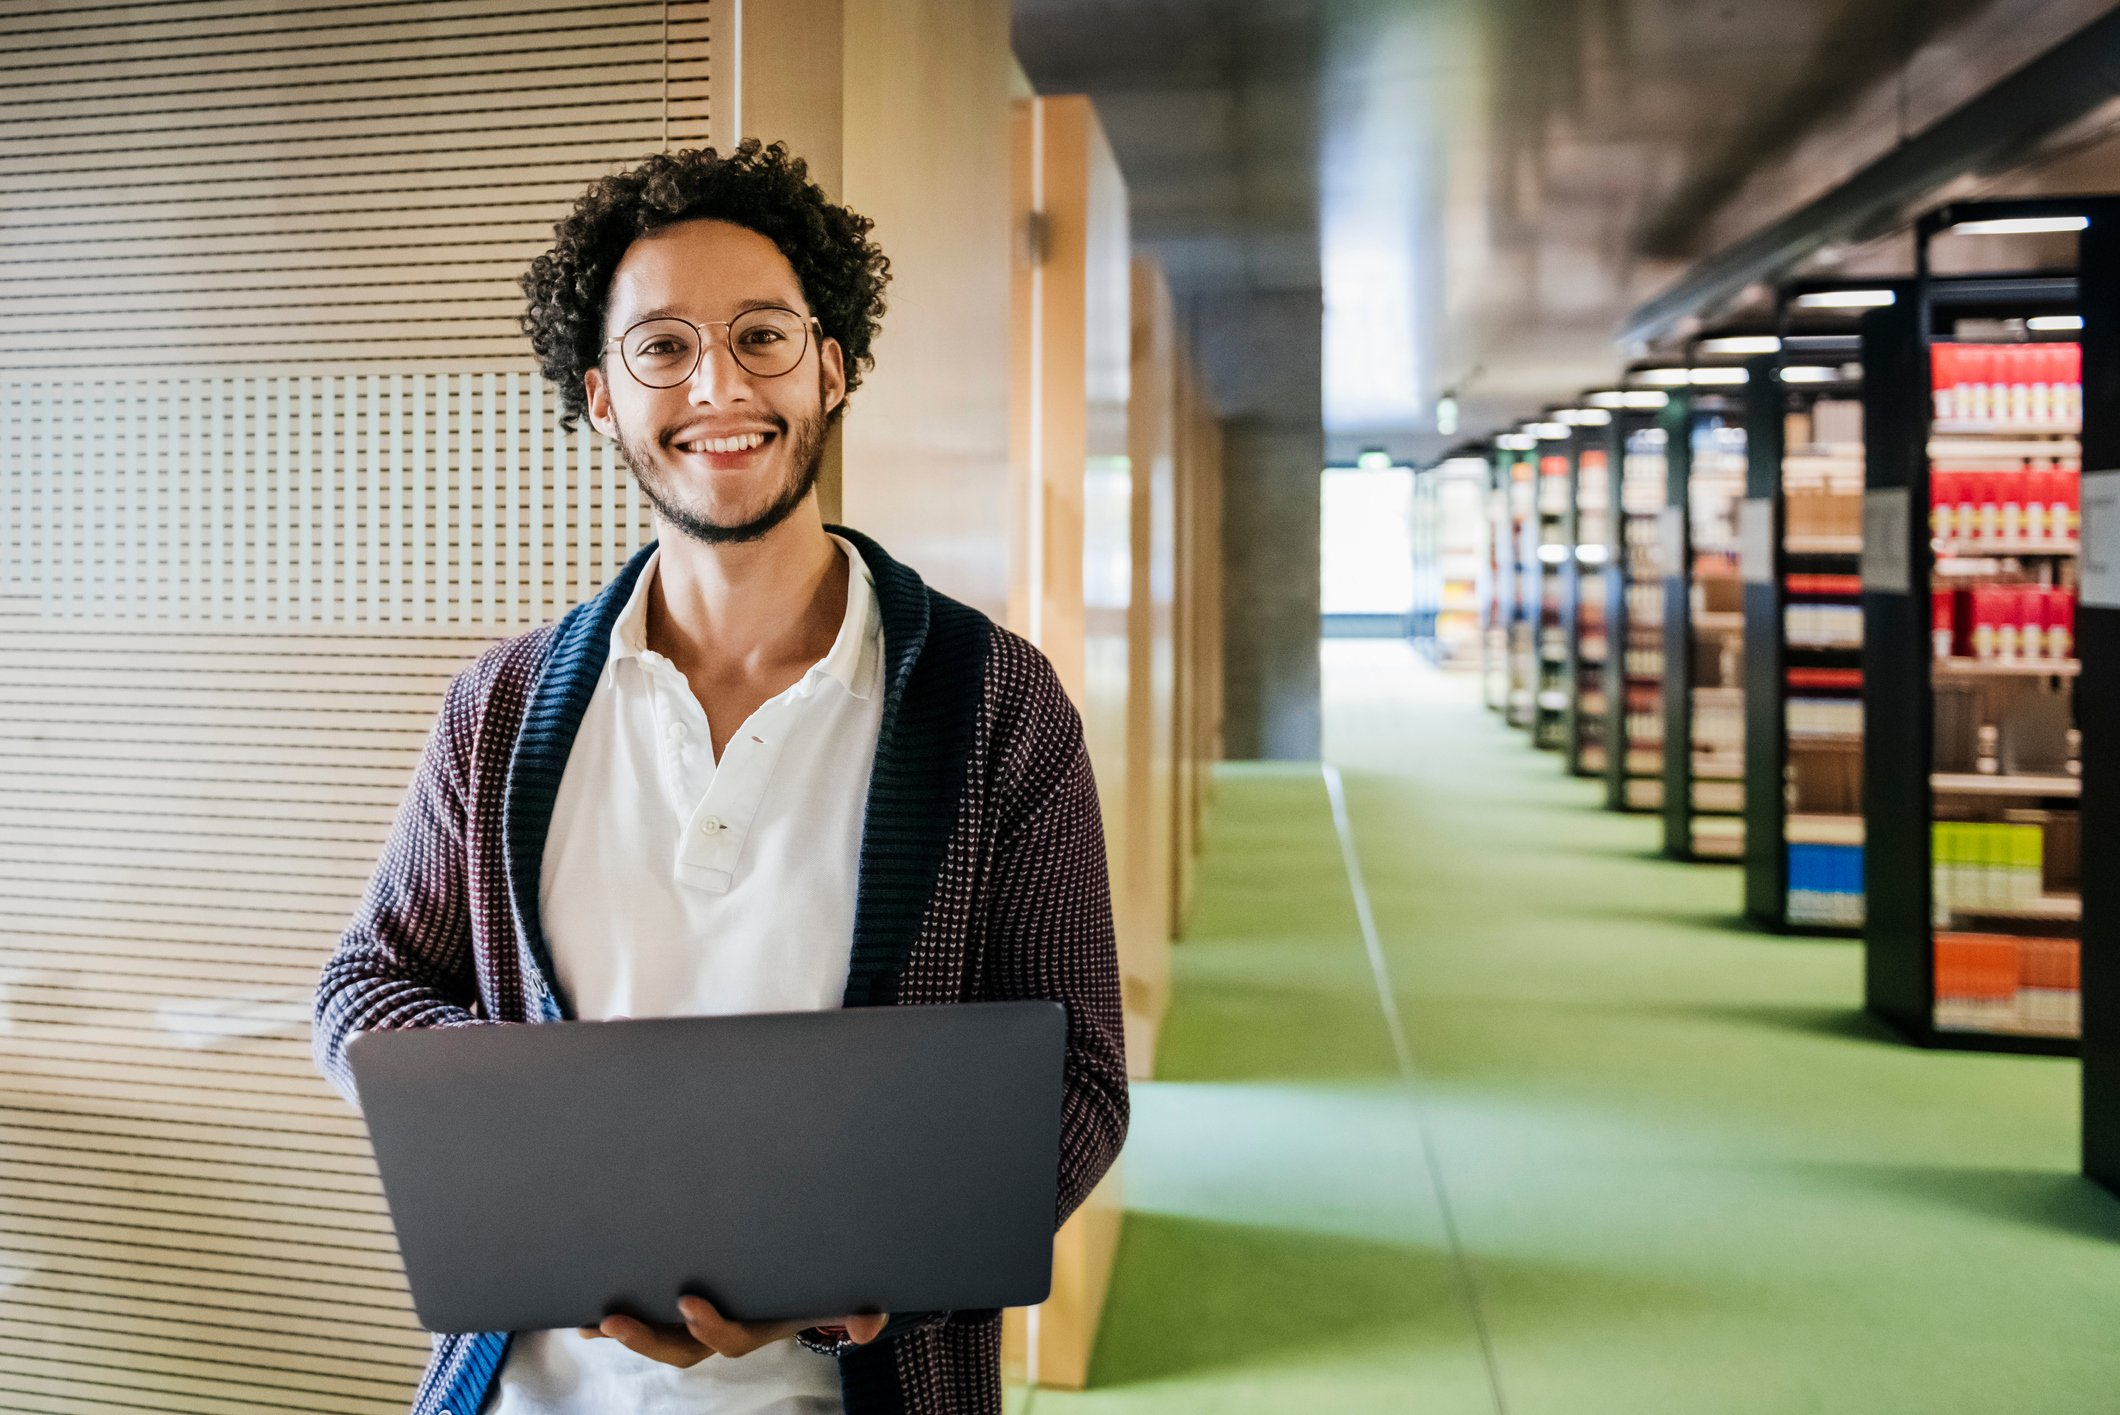 A portrait of a young man smiling and holding a laptop in a modern public library.   Photo: Getty Images